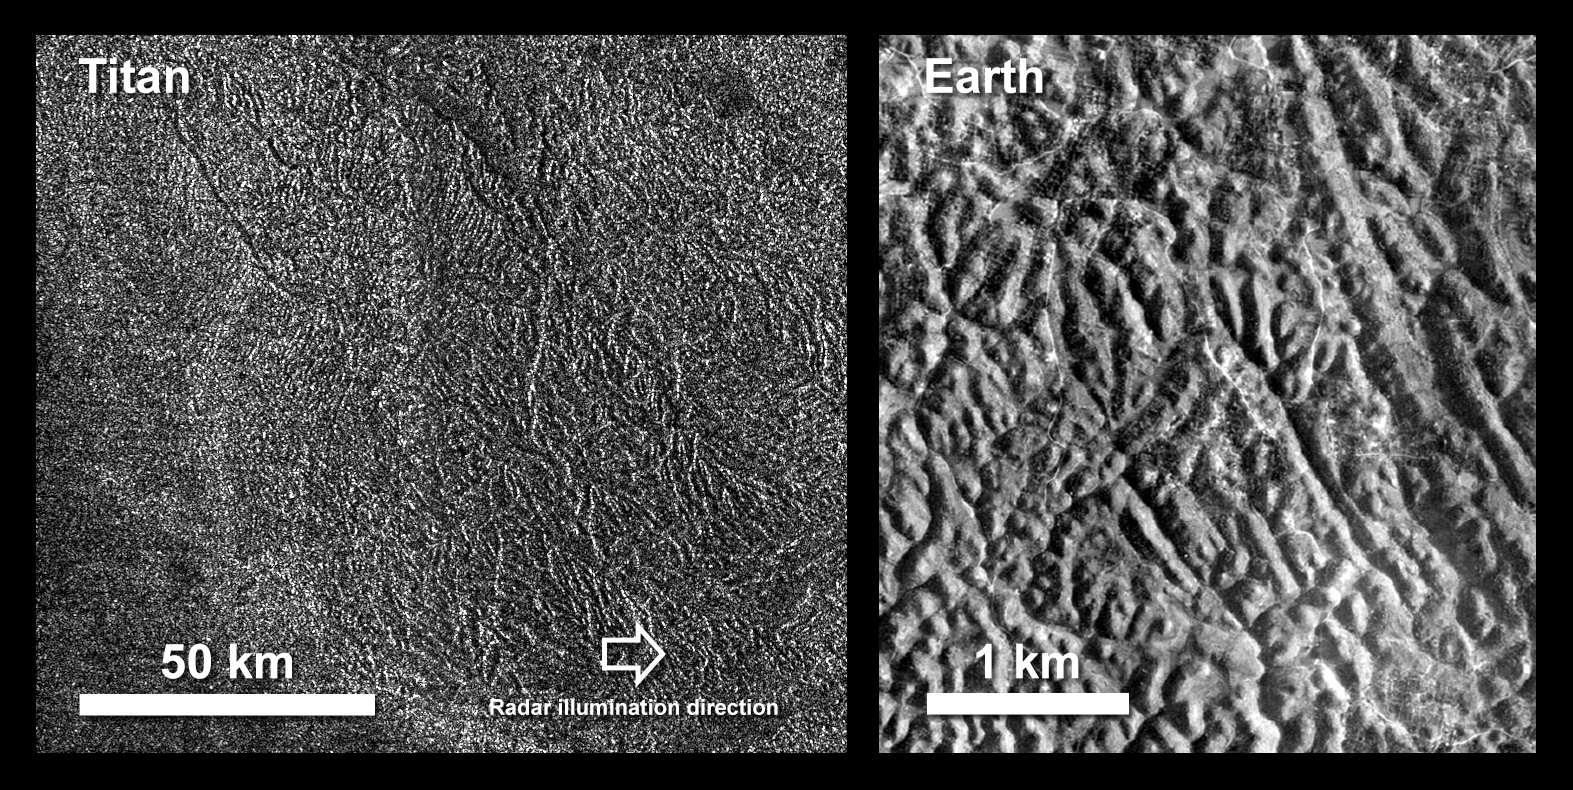 Black and white image showing terrain on Titan compared to similar terrain on Earth.